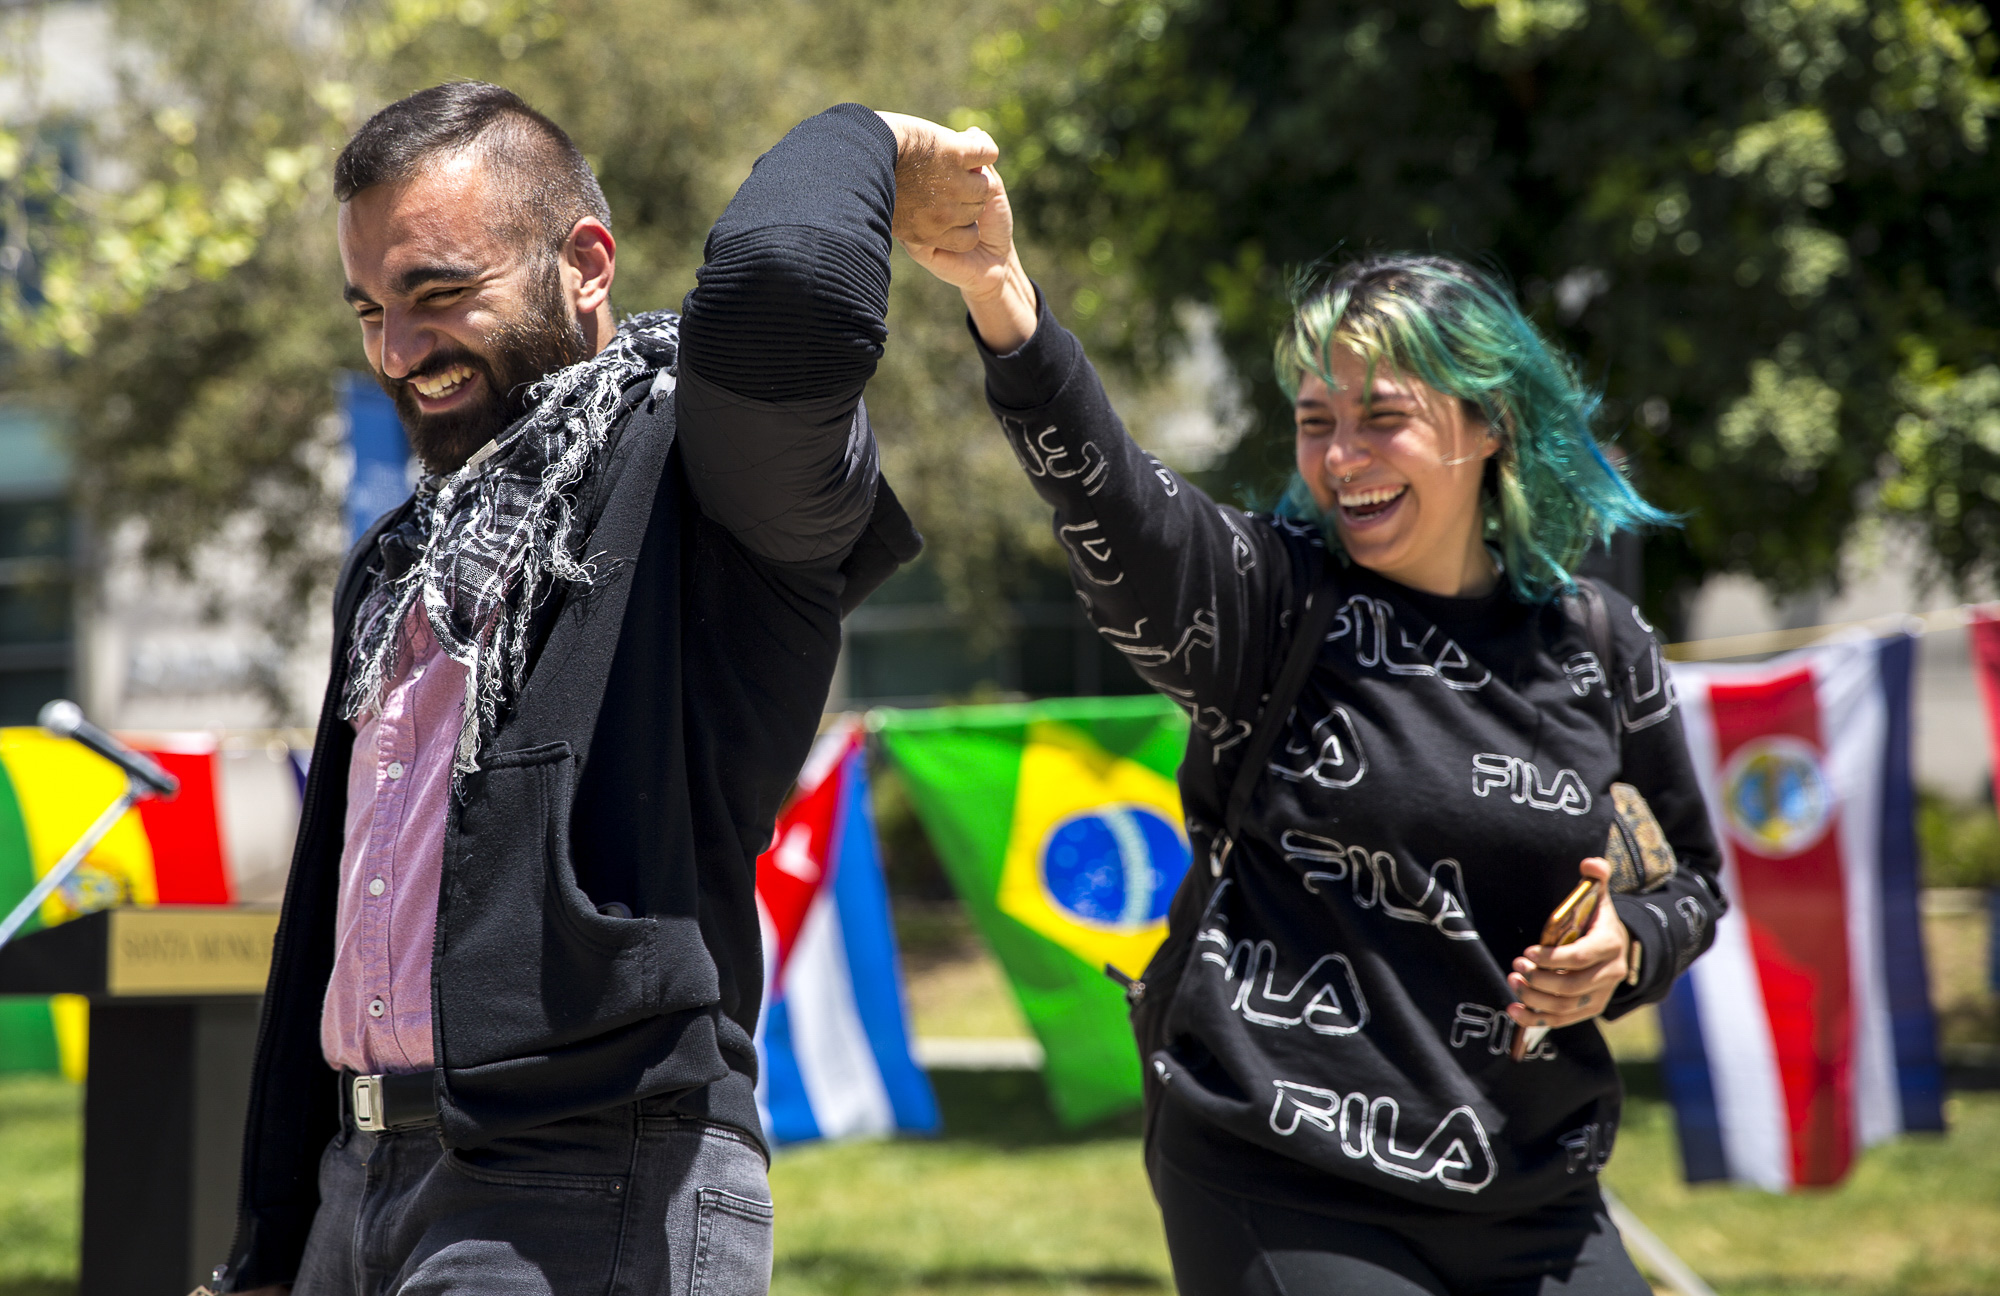 """Associated Student Director of Student Advocacy Alexa Benavente (right) dances with newly elected Associated Student Vice President Hesham Jarmakani (left) during the Cinco de Mayo Celebratory event organized by Santa Monica College club (SMC) """"Adelante"""" in front of the clock tower on the SMC main campus on Thursday, May 3 2018.  This event was put together by the Santa Monica College club """"Adelante,"""" whose goal at the event was to inform students about the origins of Cinco De Mayo and put to rest the stereotypes that come with the holiday, specifically the misperception that it is a day of independence for Mexico and also that is just a drinking holiday in the United States. (Matthew Martin/Corsair Photo)"""